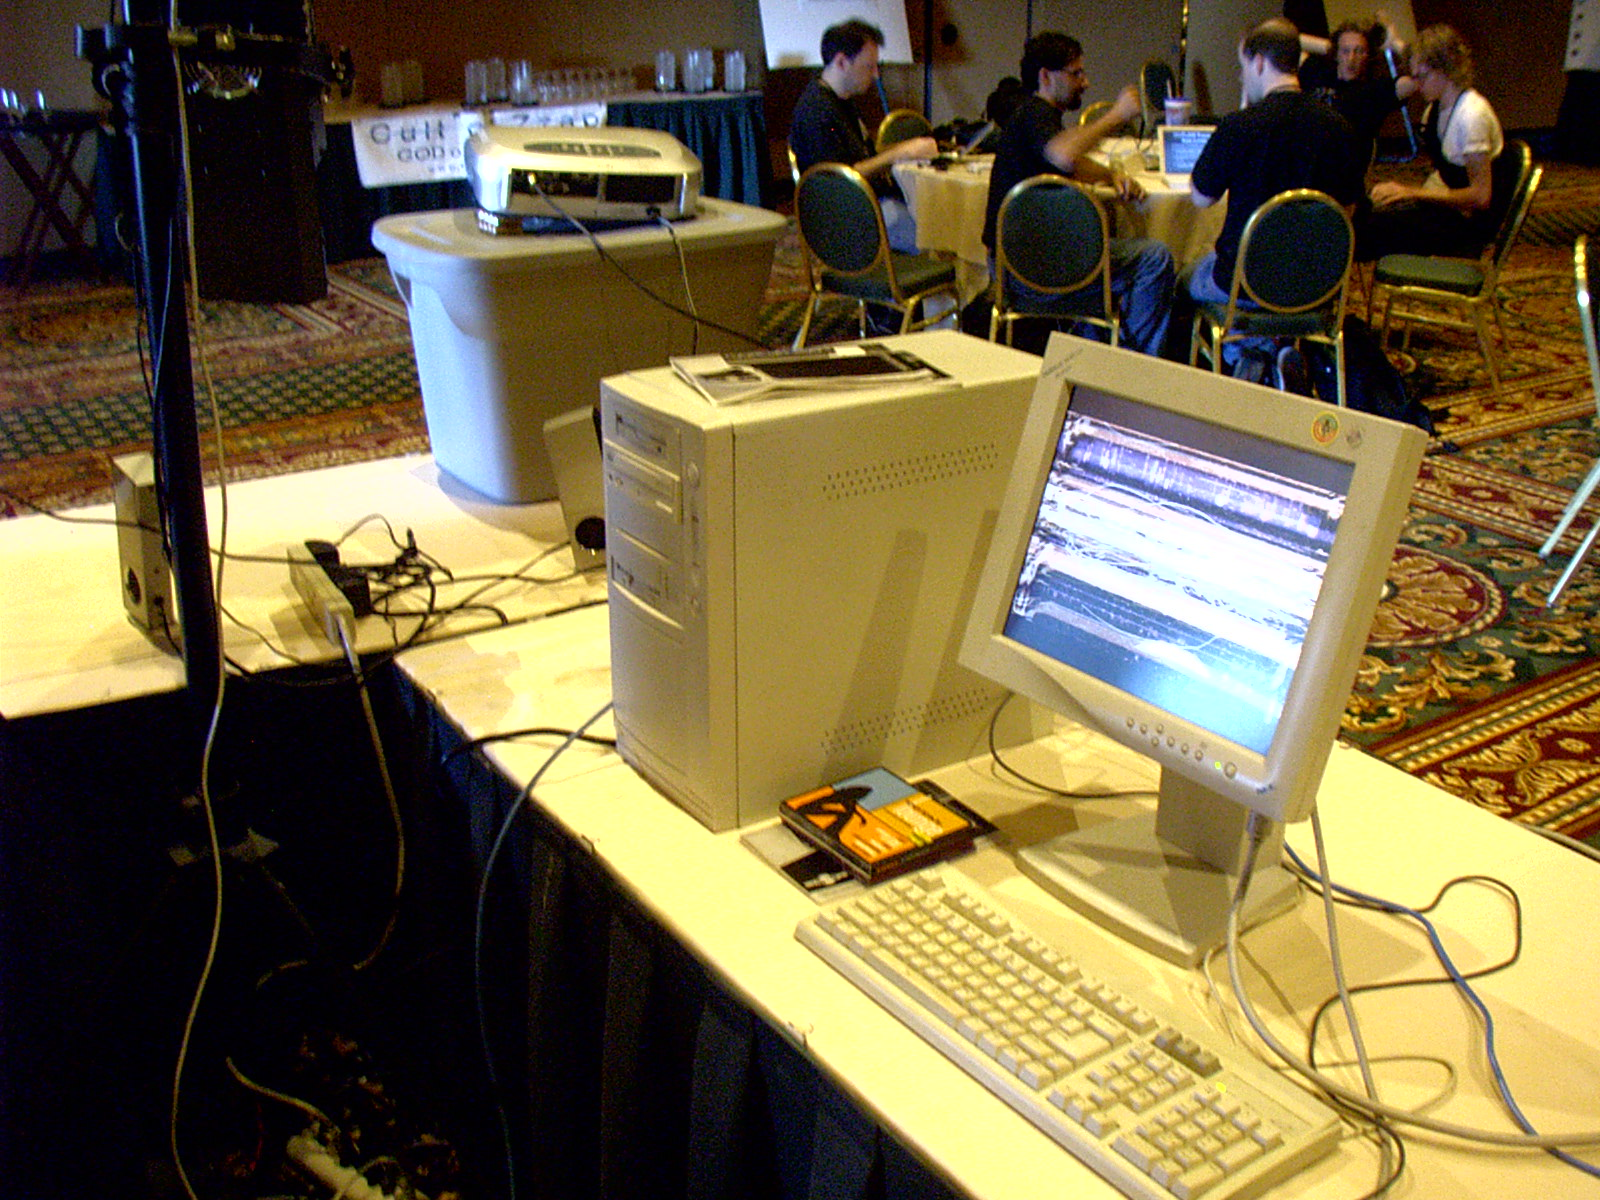 Toorcon Hacker Convention Photo #262